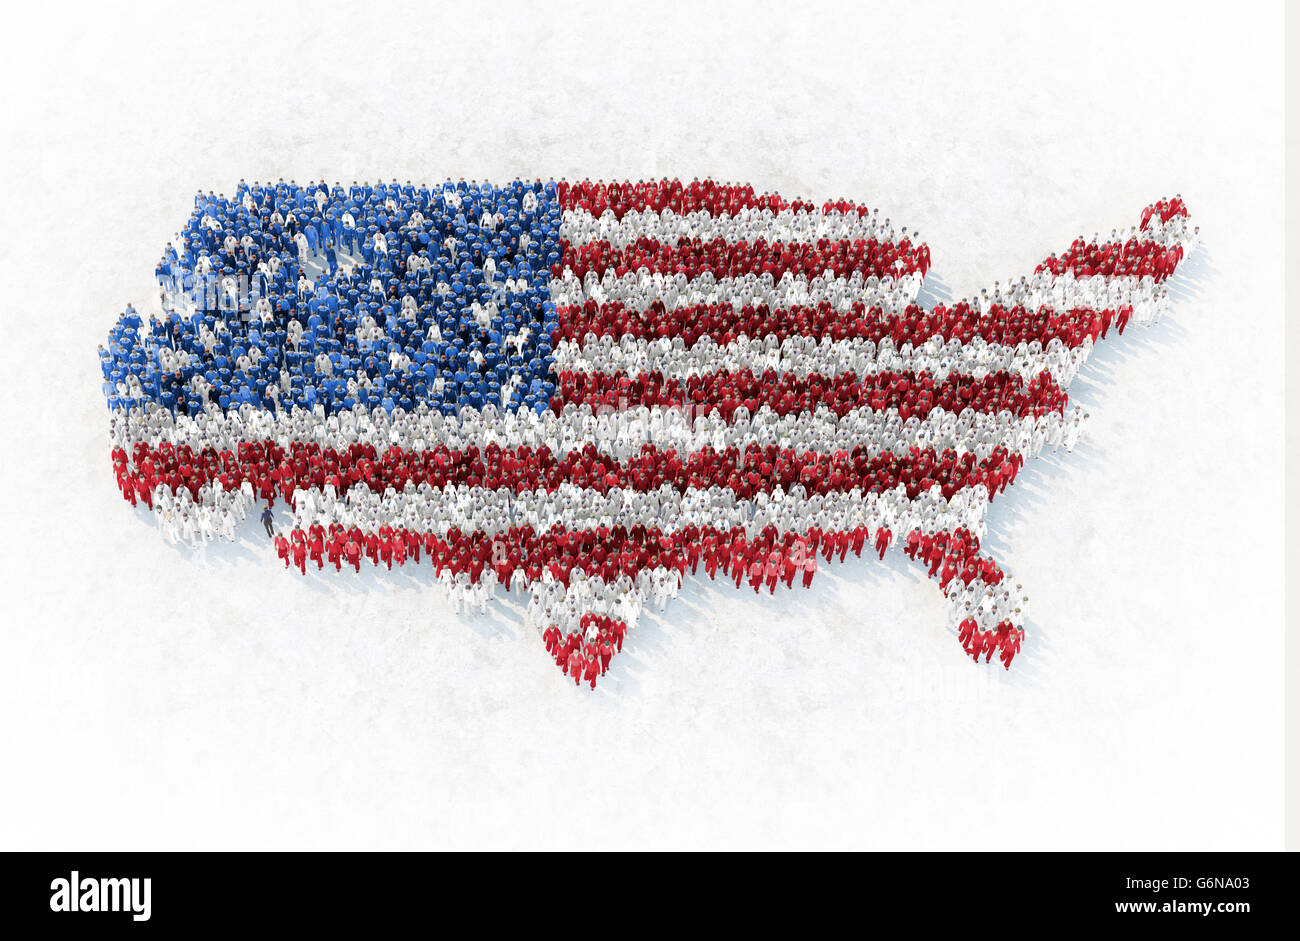 The outline of US formed by people dressed in red, blue and white - 3D illustration - Stock Image